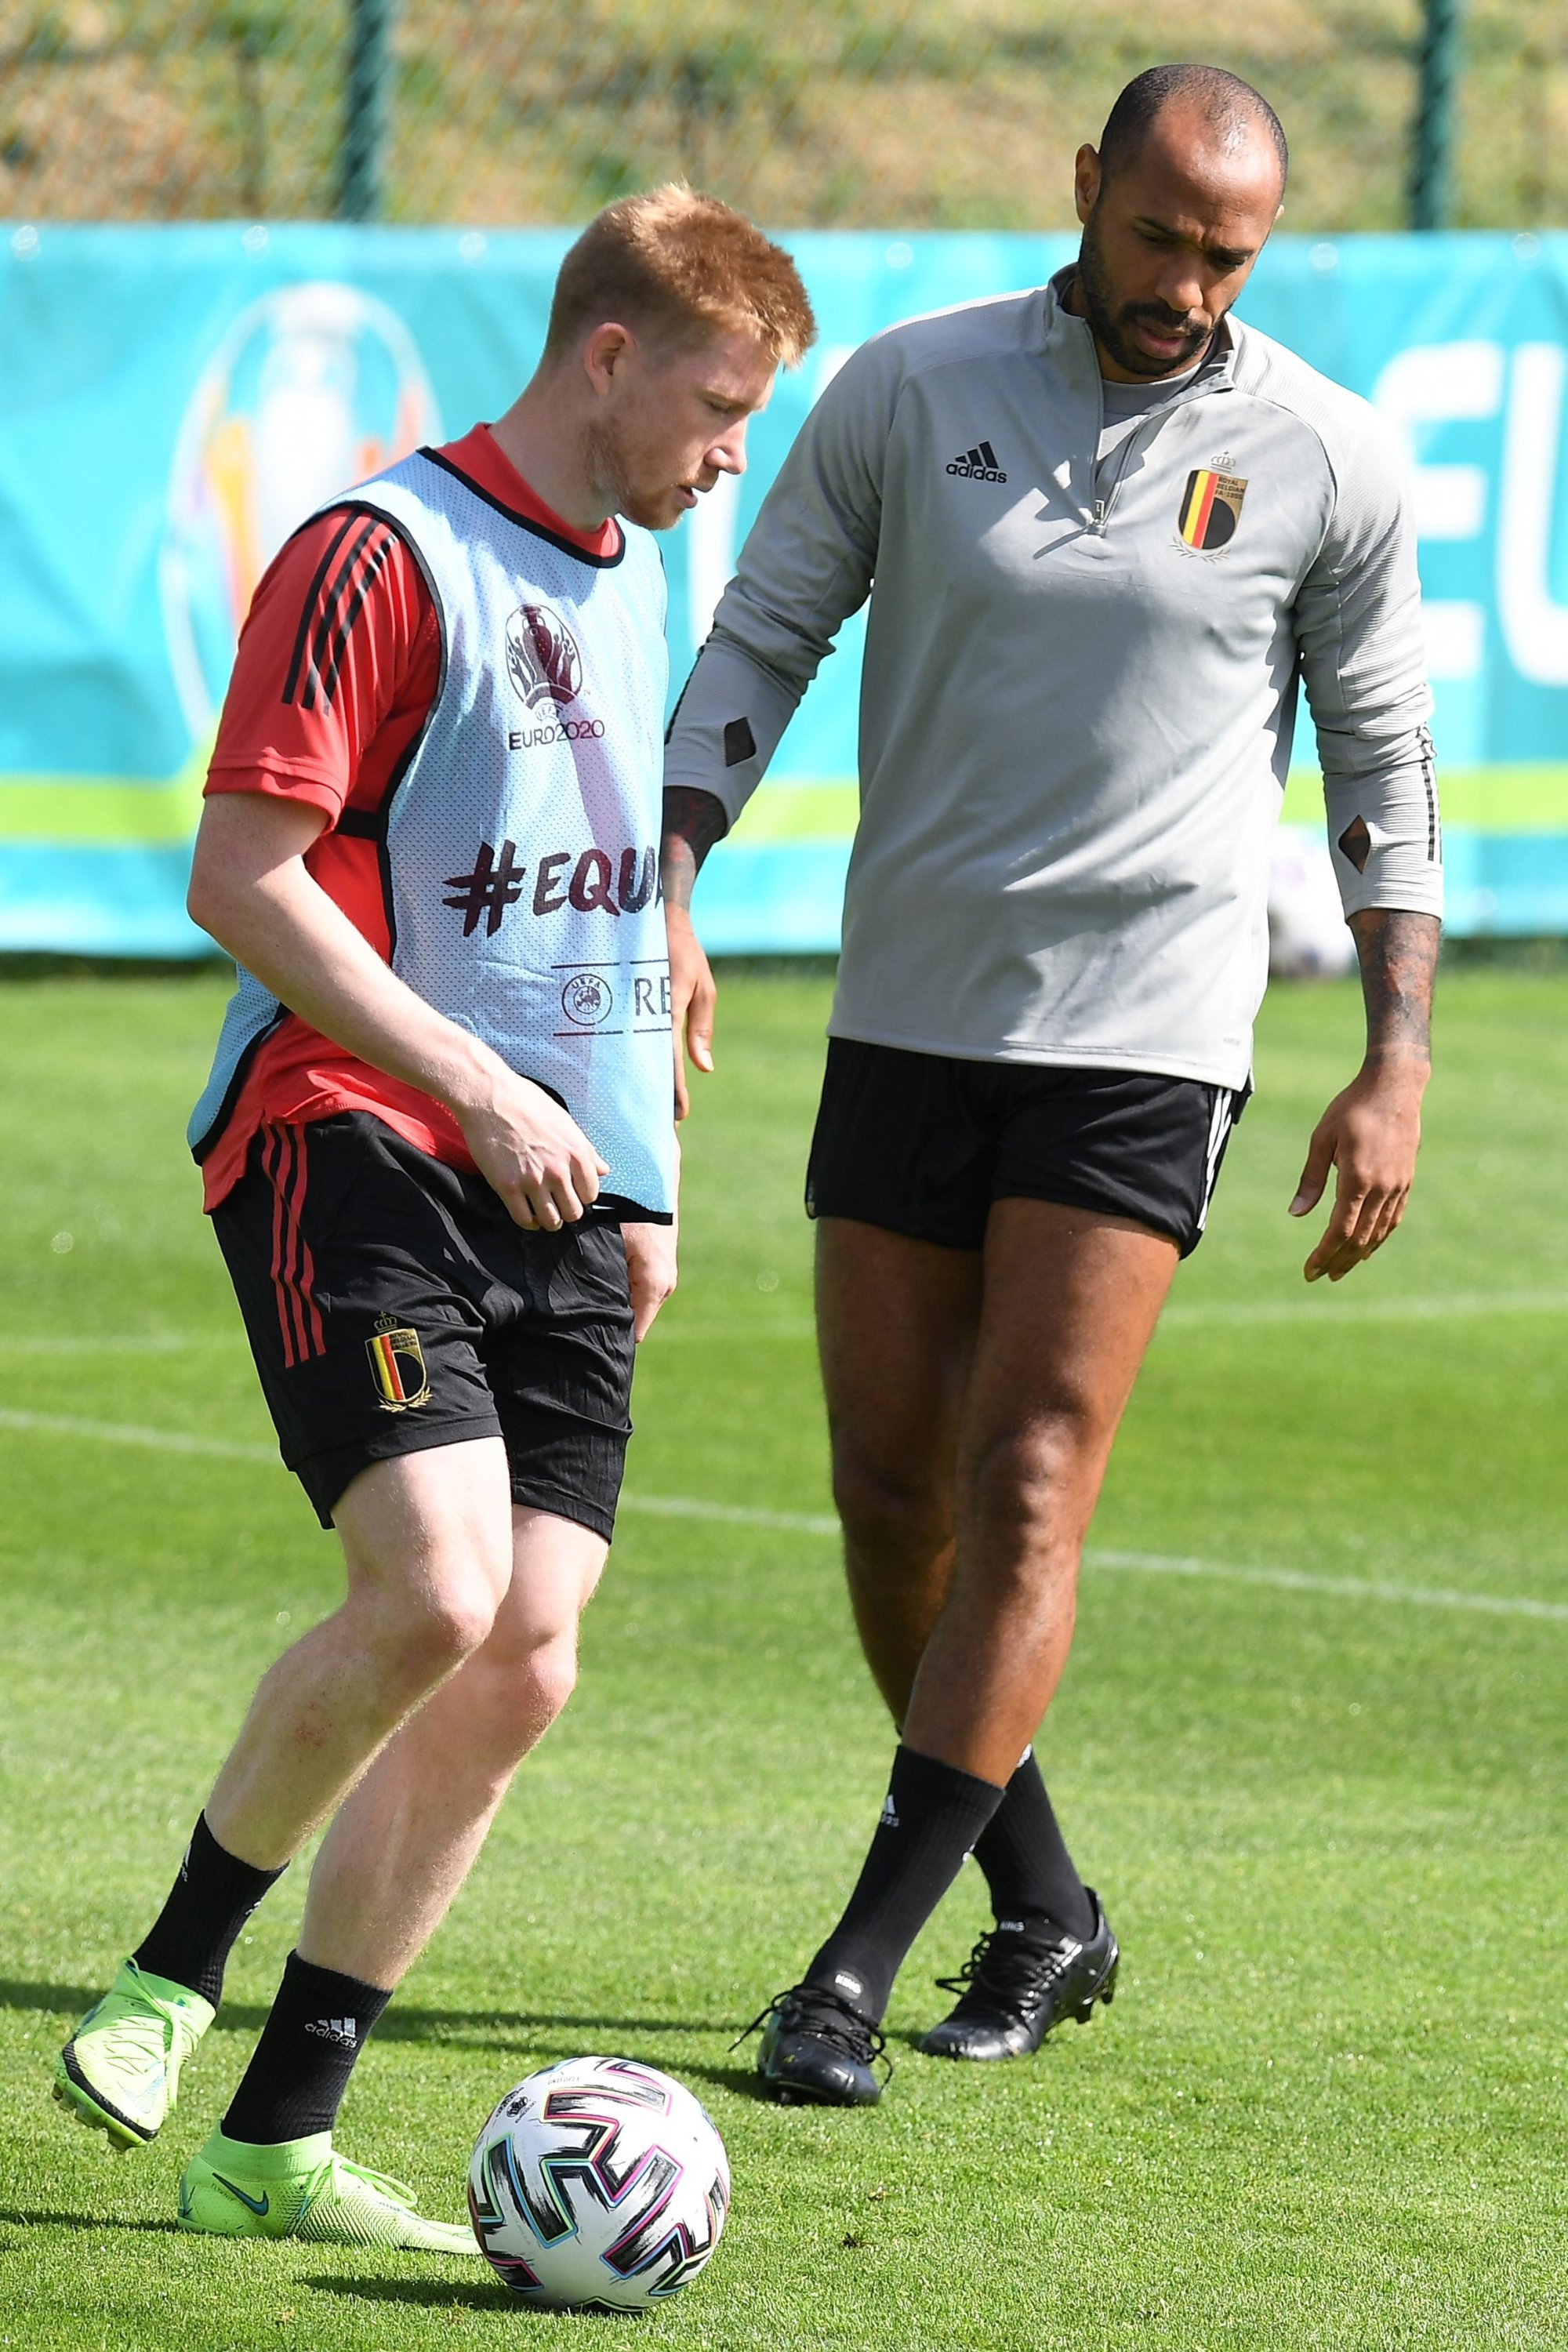 Belgium's French assistant coach Thierry Henry (R) stands next to midfielder Kevin De Bruyne during a training session in Tubize, Belgium, June 10, 2021. (AFP Photo)